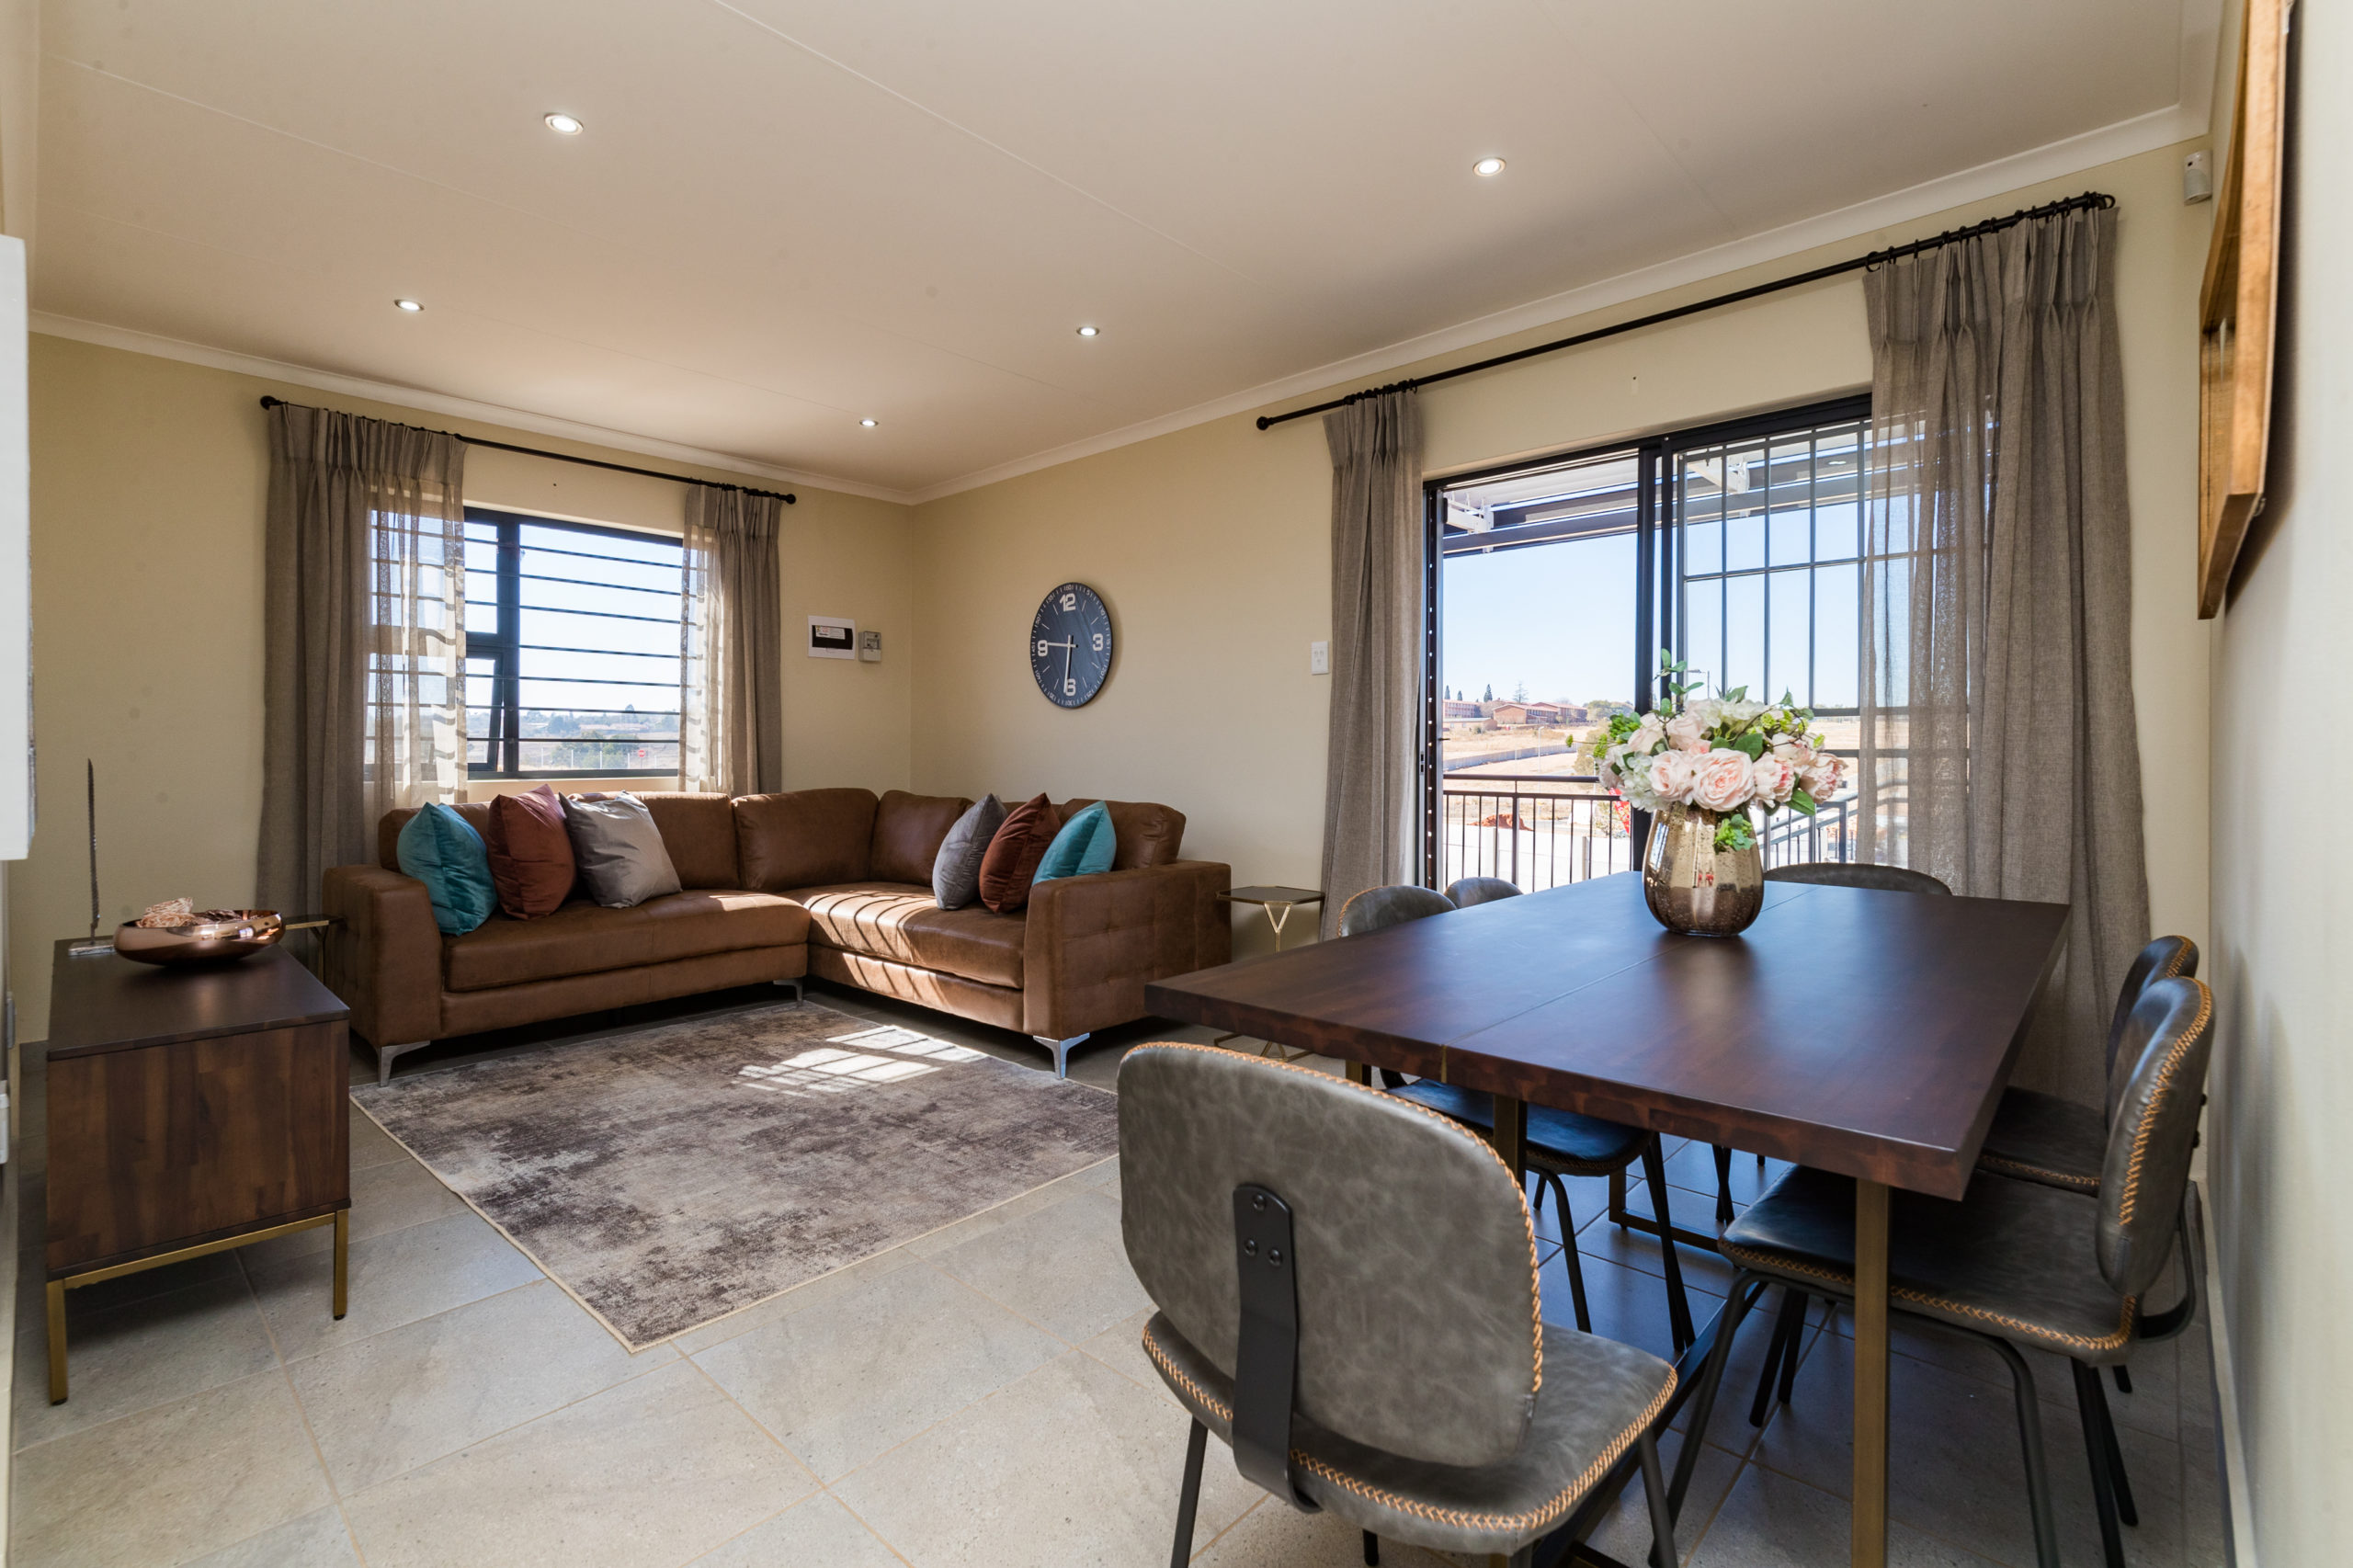 Royal Cradle, Homes for Sale in Mindalore, Gauteng - Lounge and Dining Area